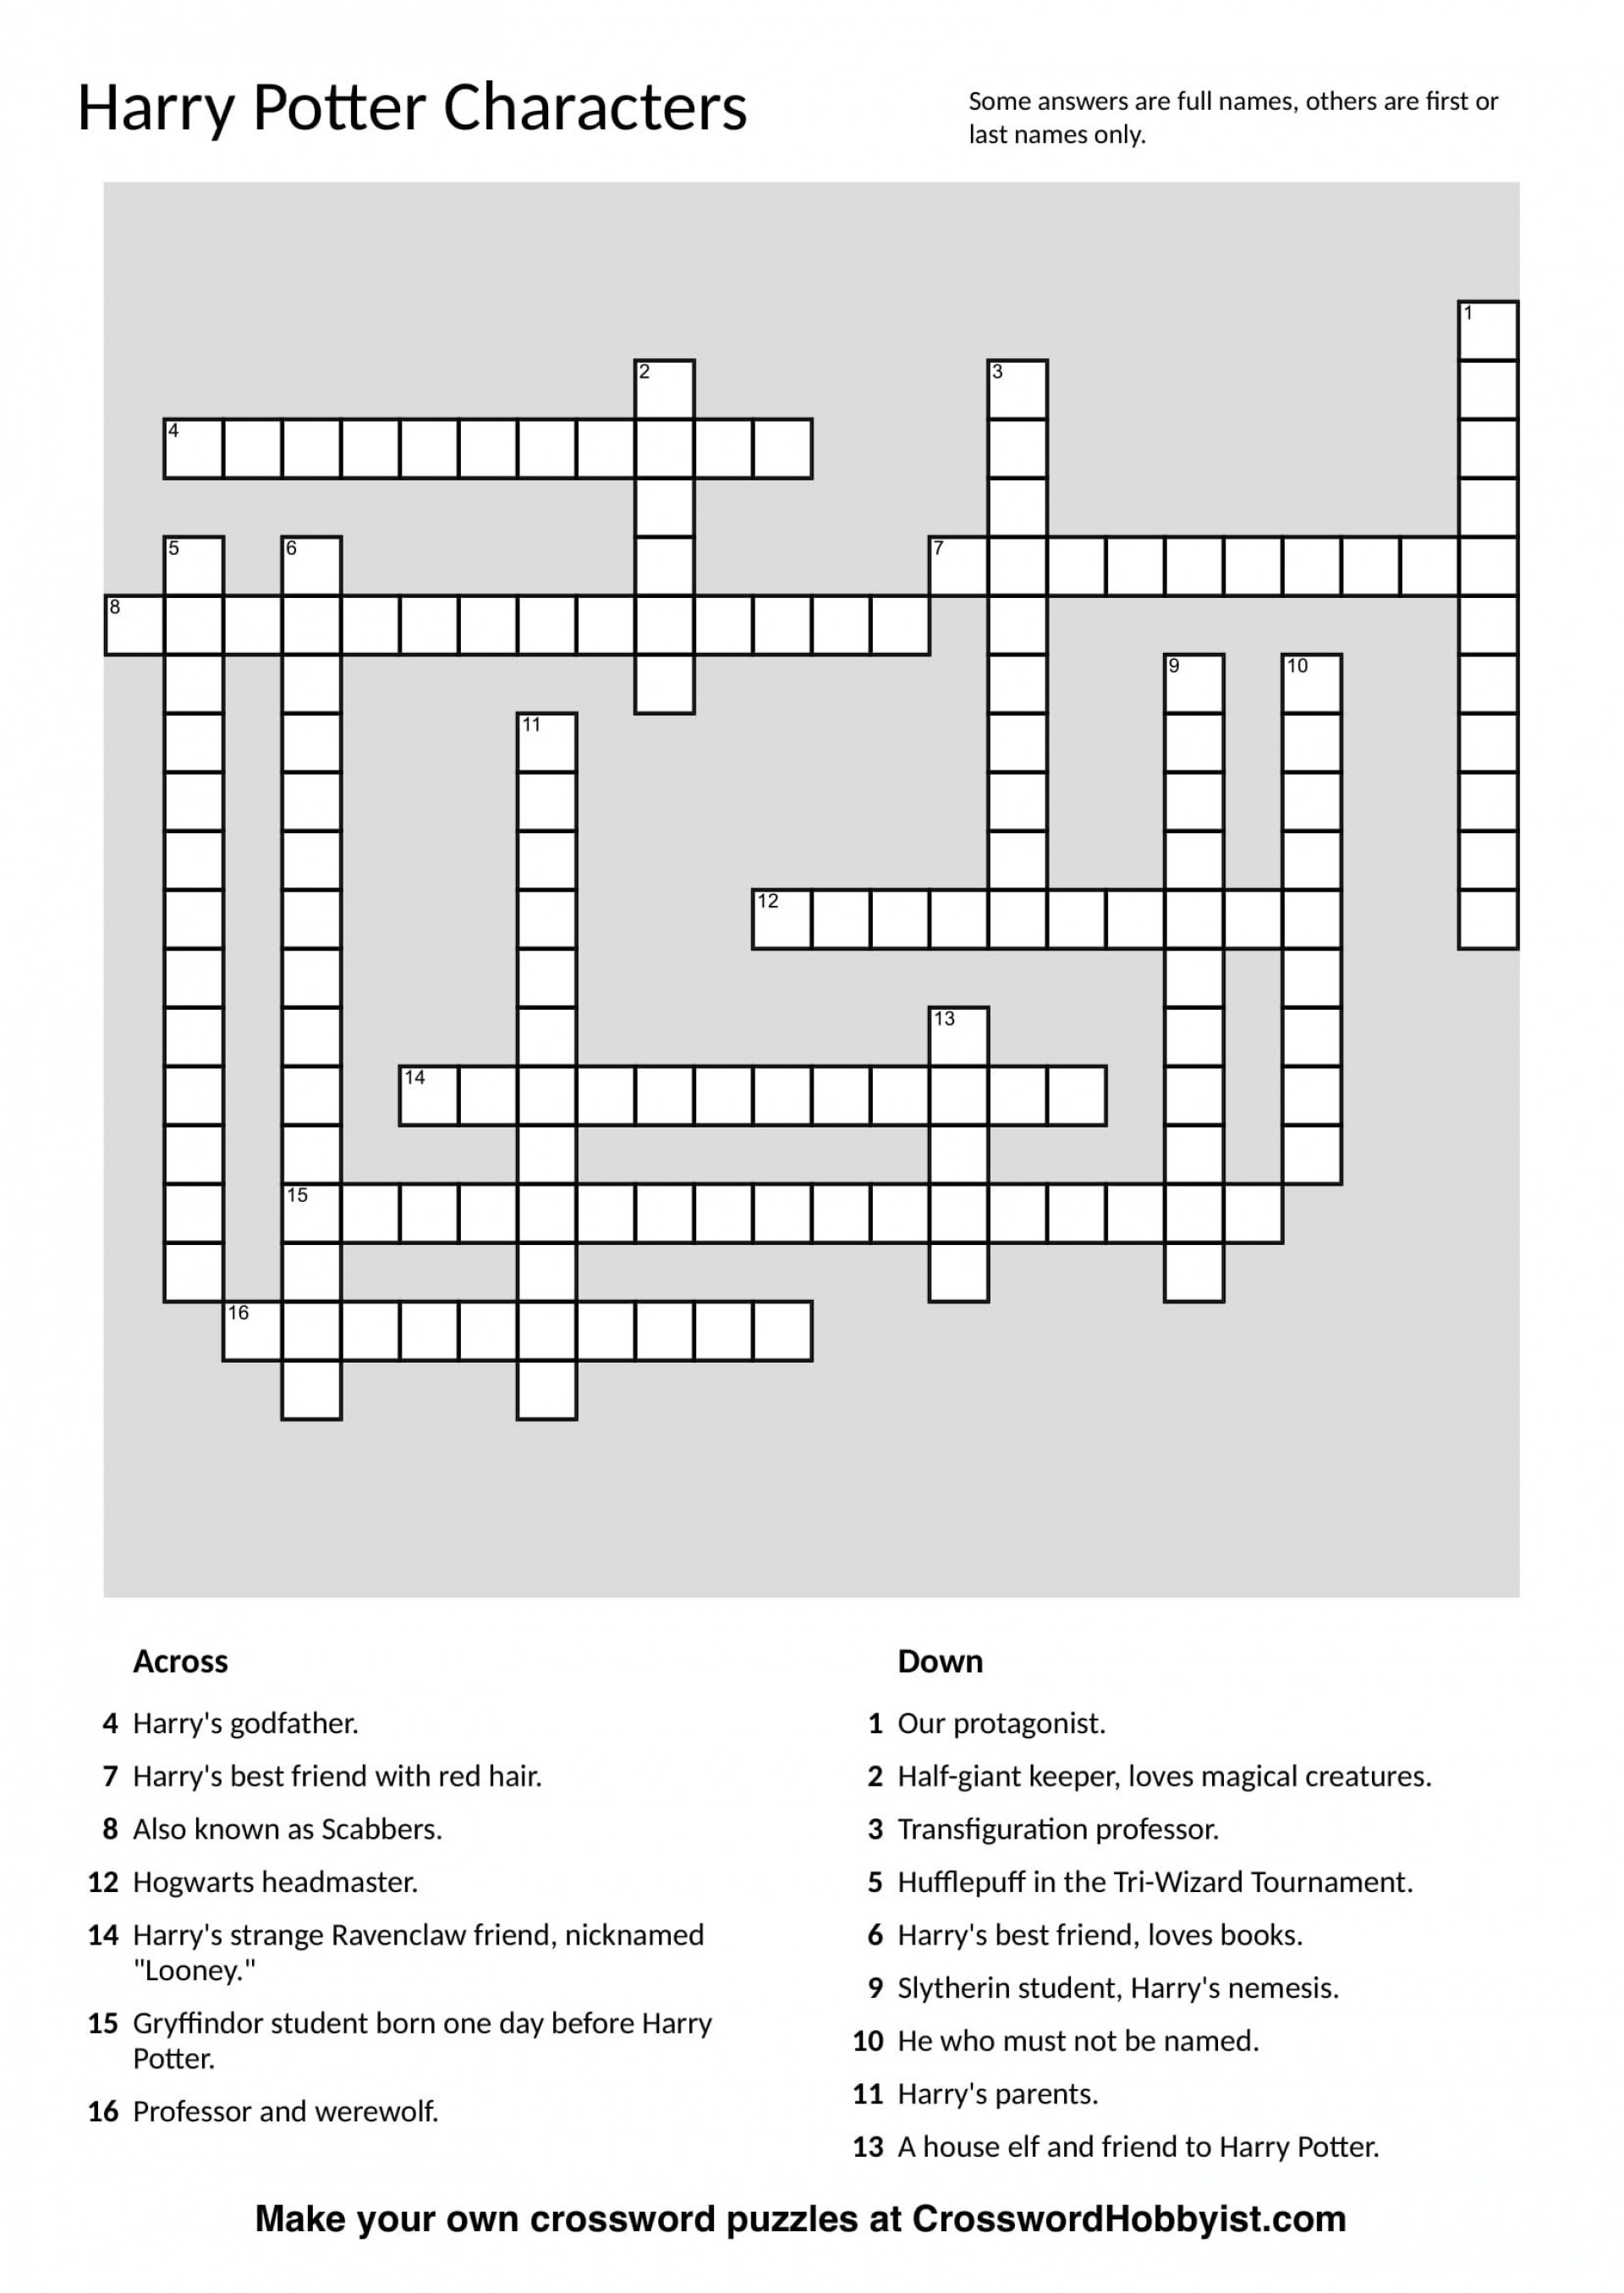 Awesome Crossword Puzzle Make Your Own ~ Themarketonholly - Make Your Own Crossword Puzzle Free Printable